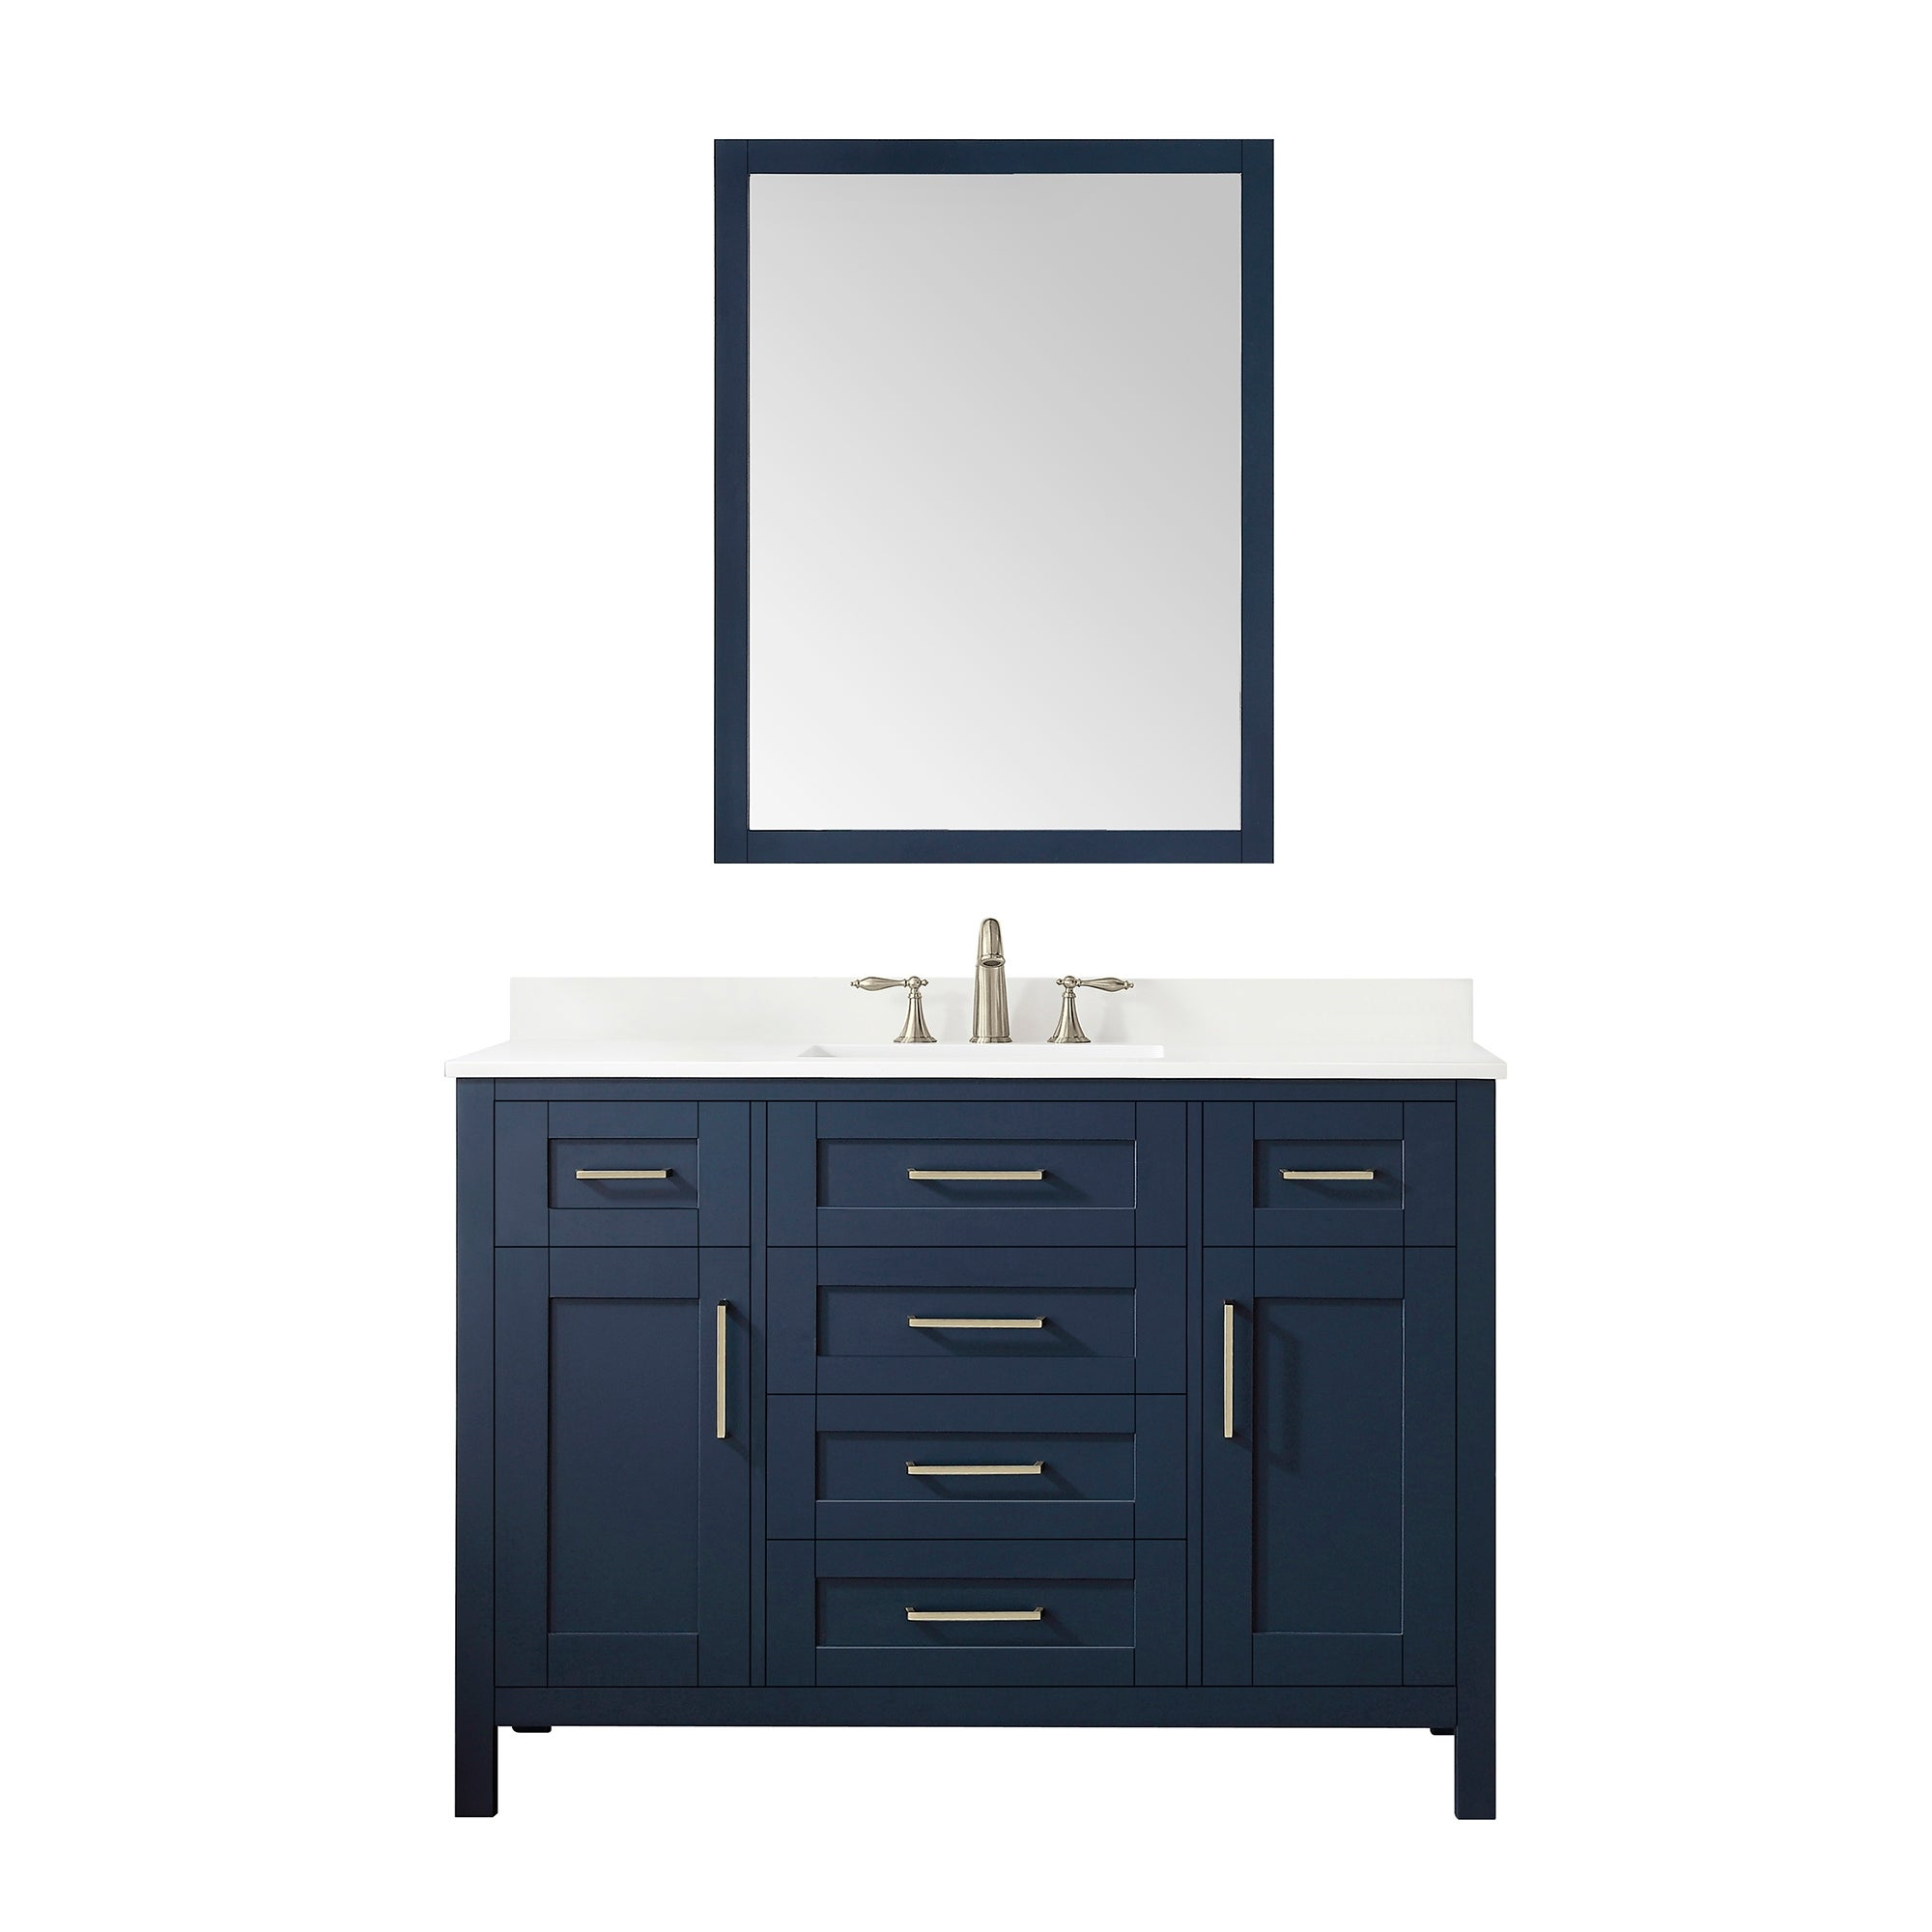 Ove Decors Tahoe 48 In Midnight Blue Single Sink Vanity With White Cultured Marble Top And Mirror Overstock 26388094